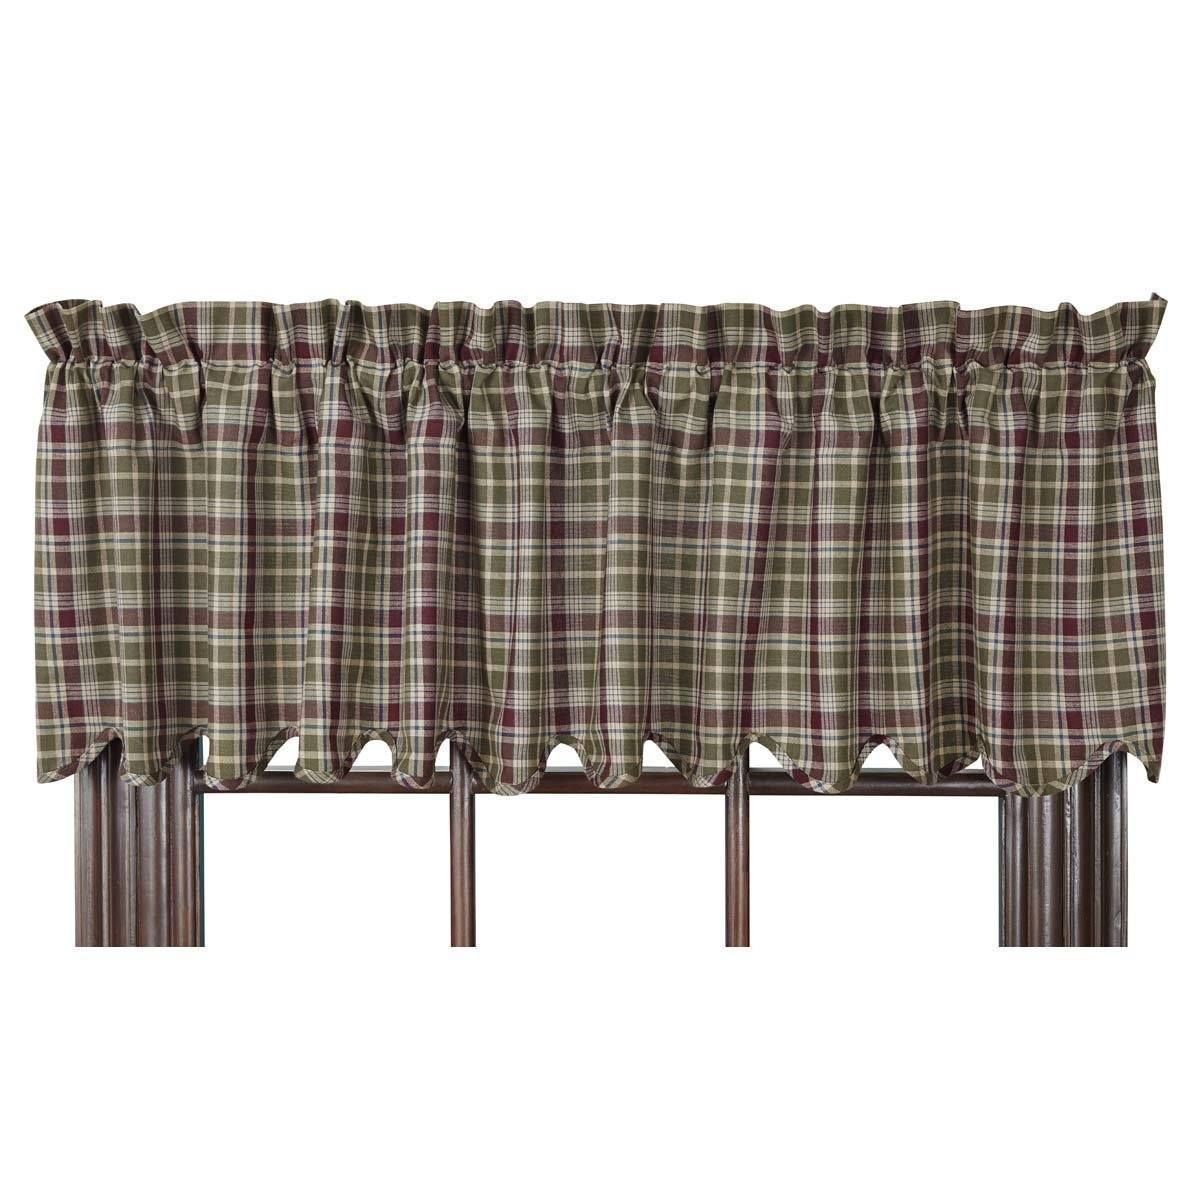 Jackson Valance | Primitive Home Decor | Curtains, Valance Inside Bermuda Ruffle Kitchen Curtain Tier Sets (View 20 of 20)